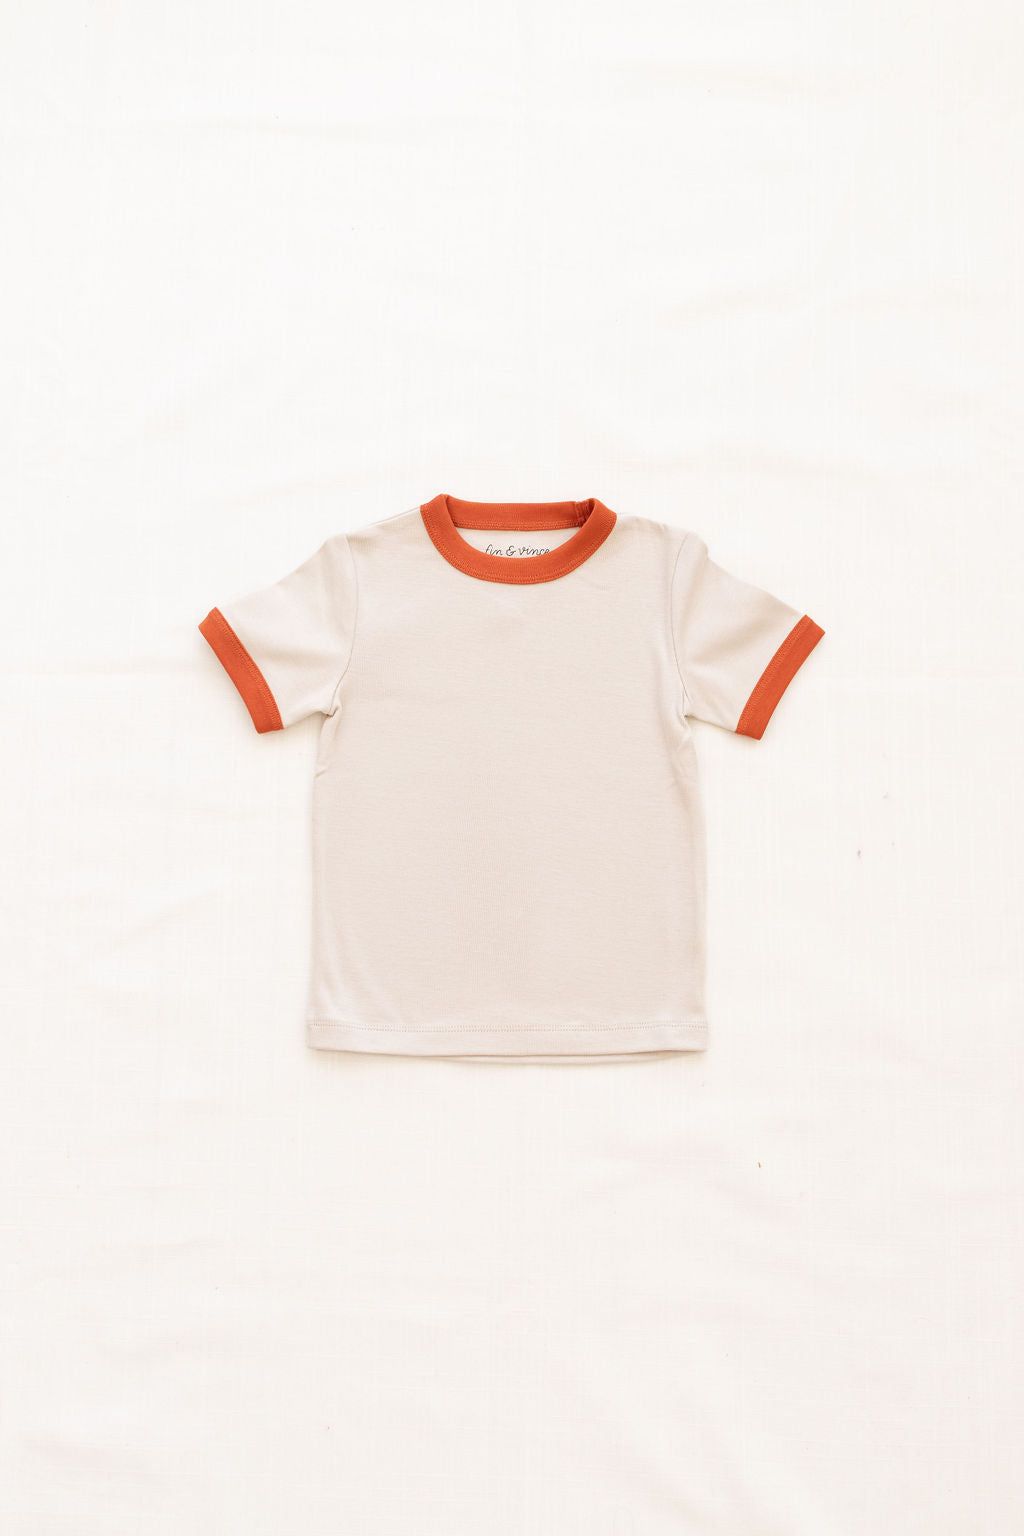 Vintage Tee - oatmeal w/ red rock trim